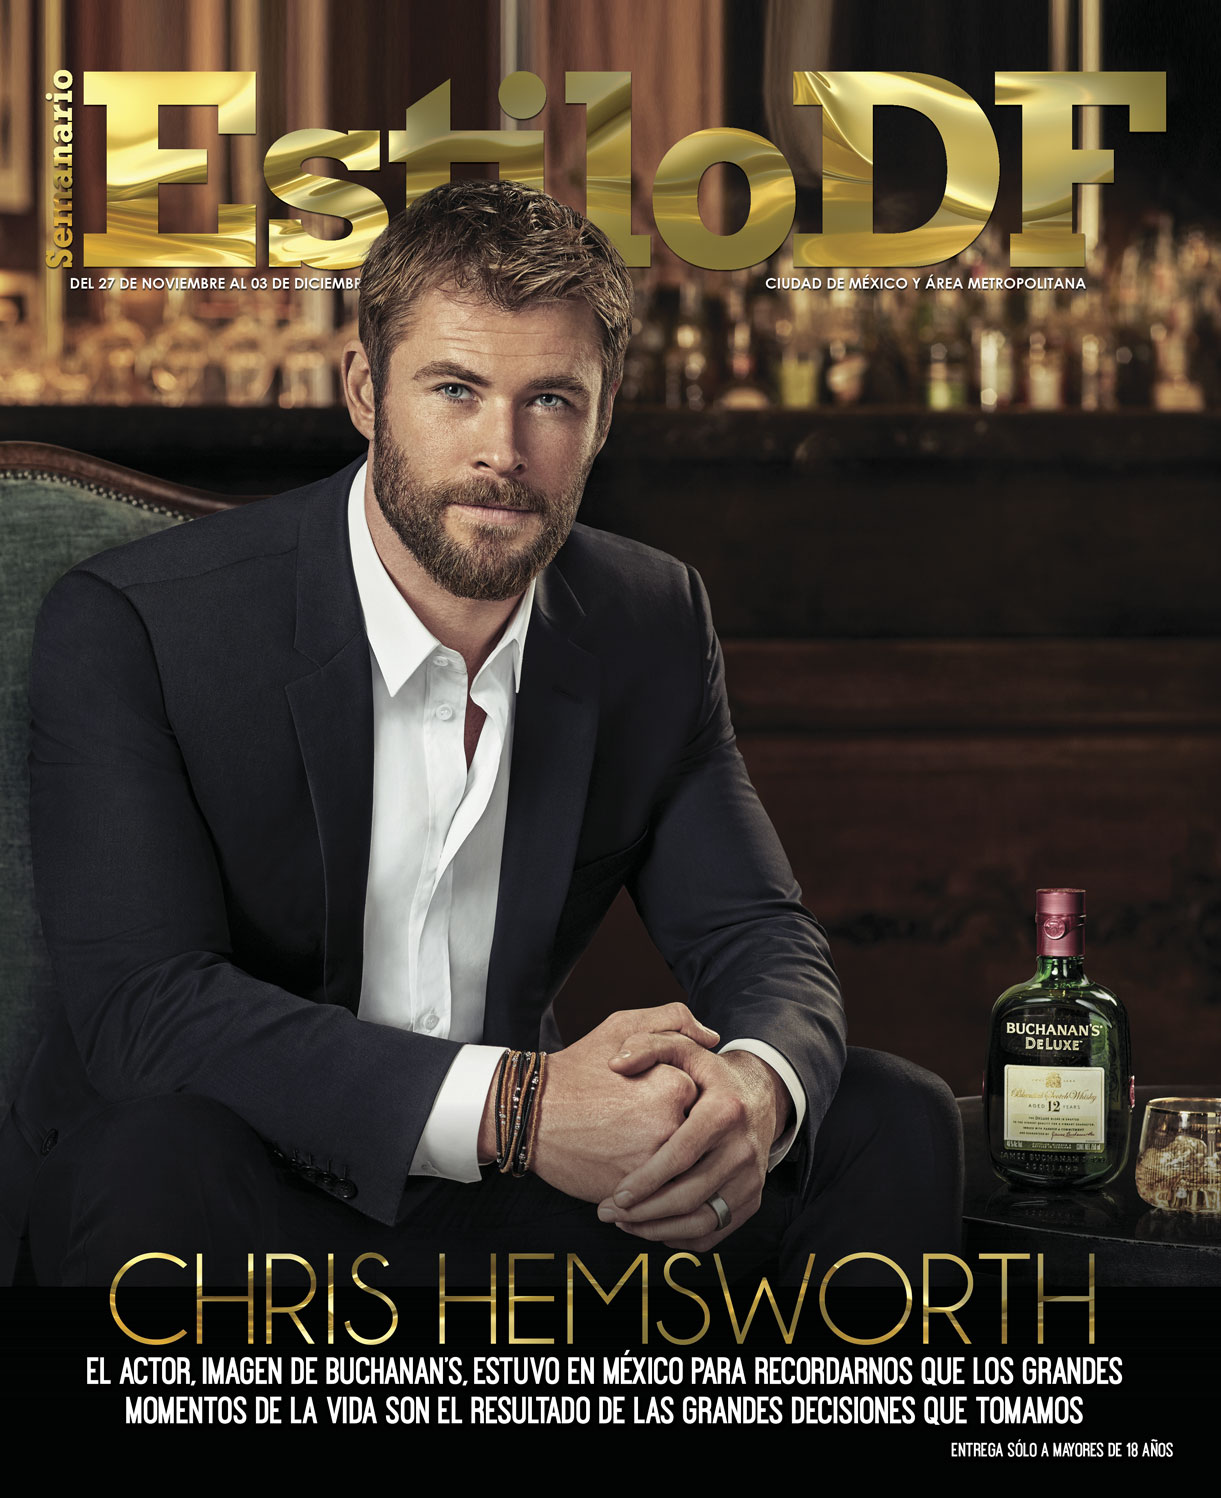 Chris-Hermsworth-Portada-Web